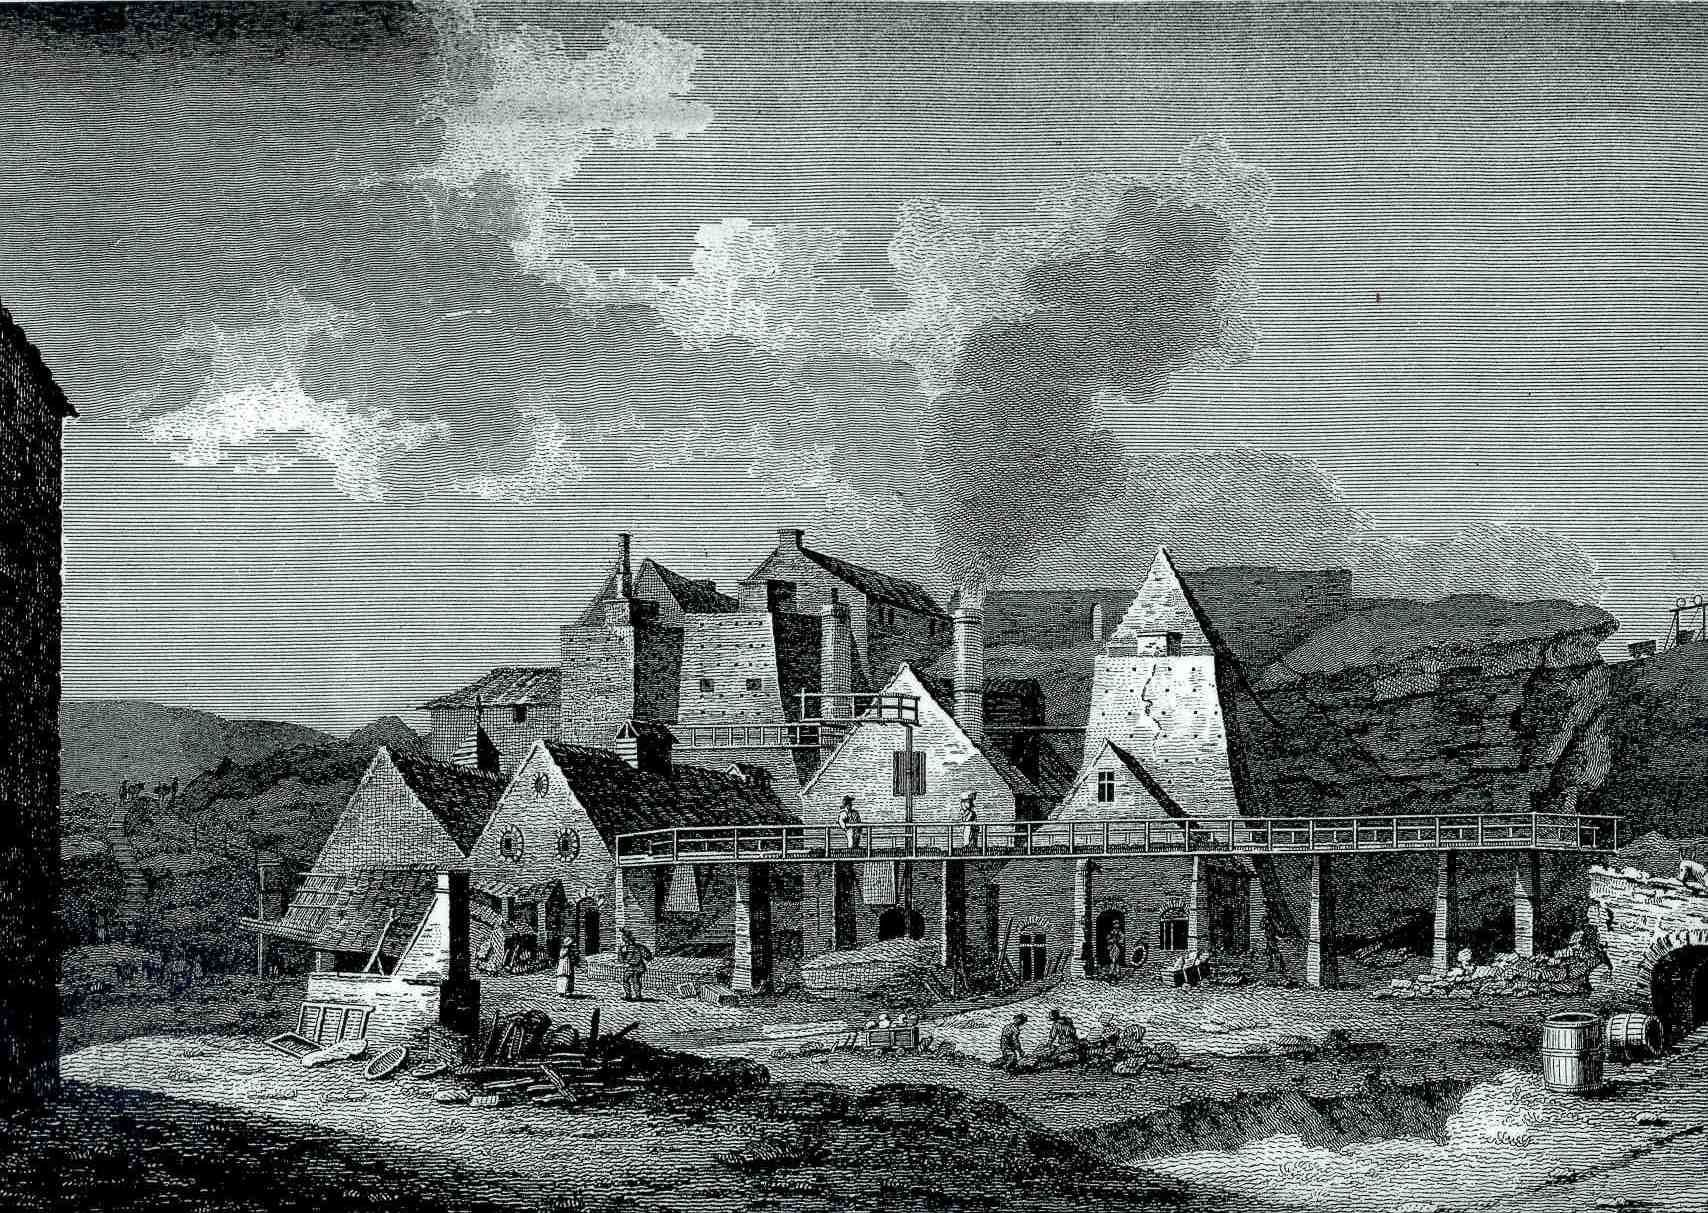 A print of Blaenavon Iron Works in about 1800 from a drawing by Sir Richard Colt Hoare.